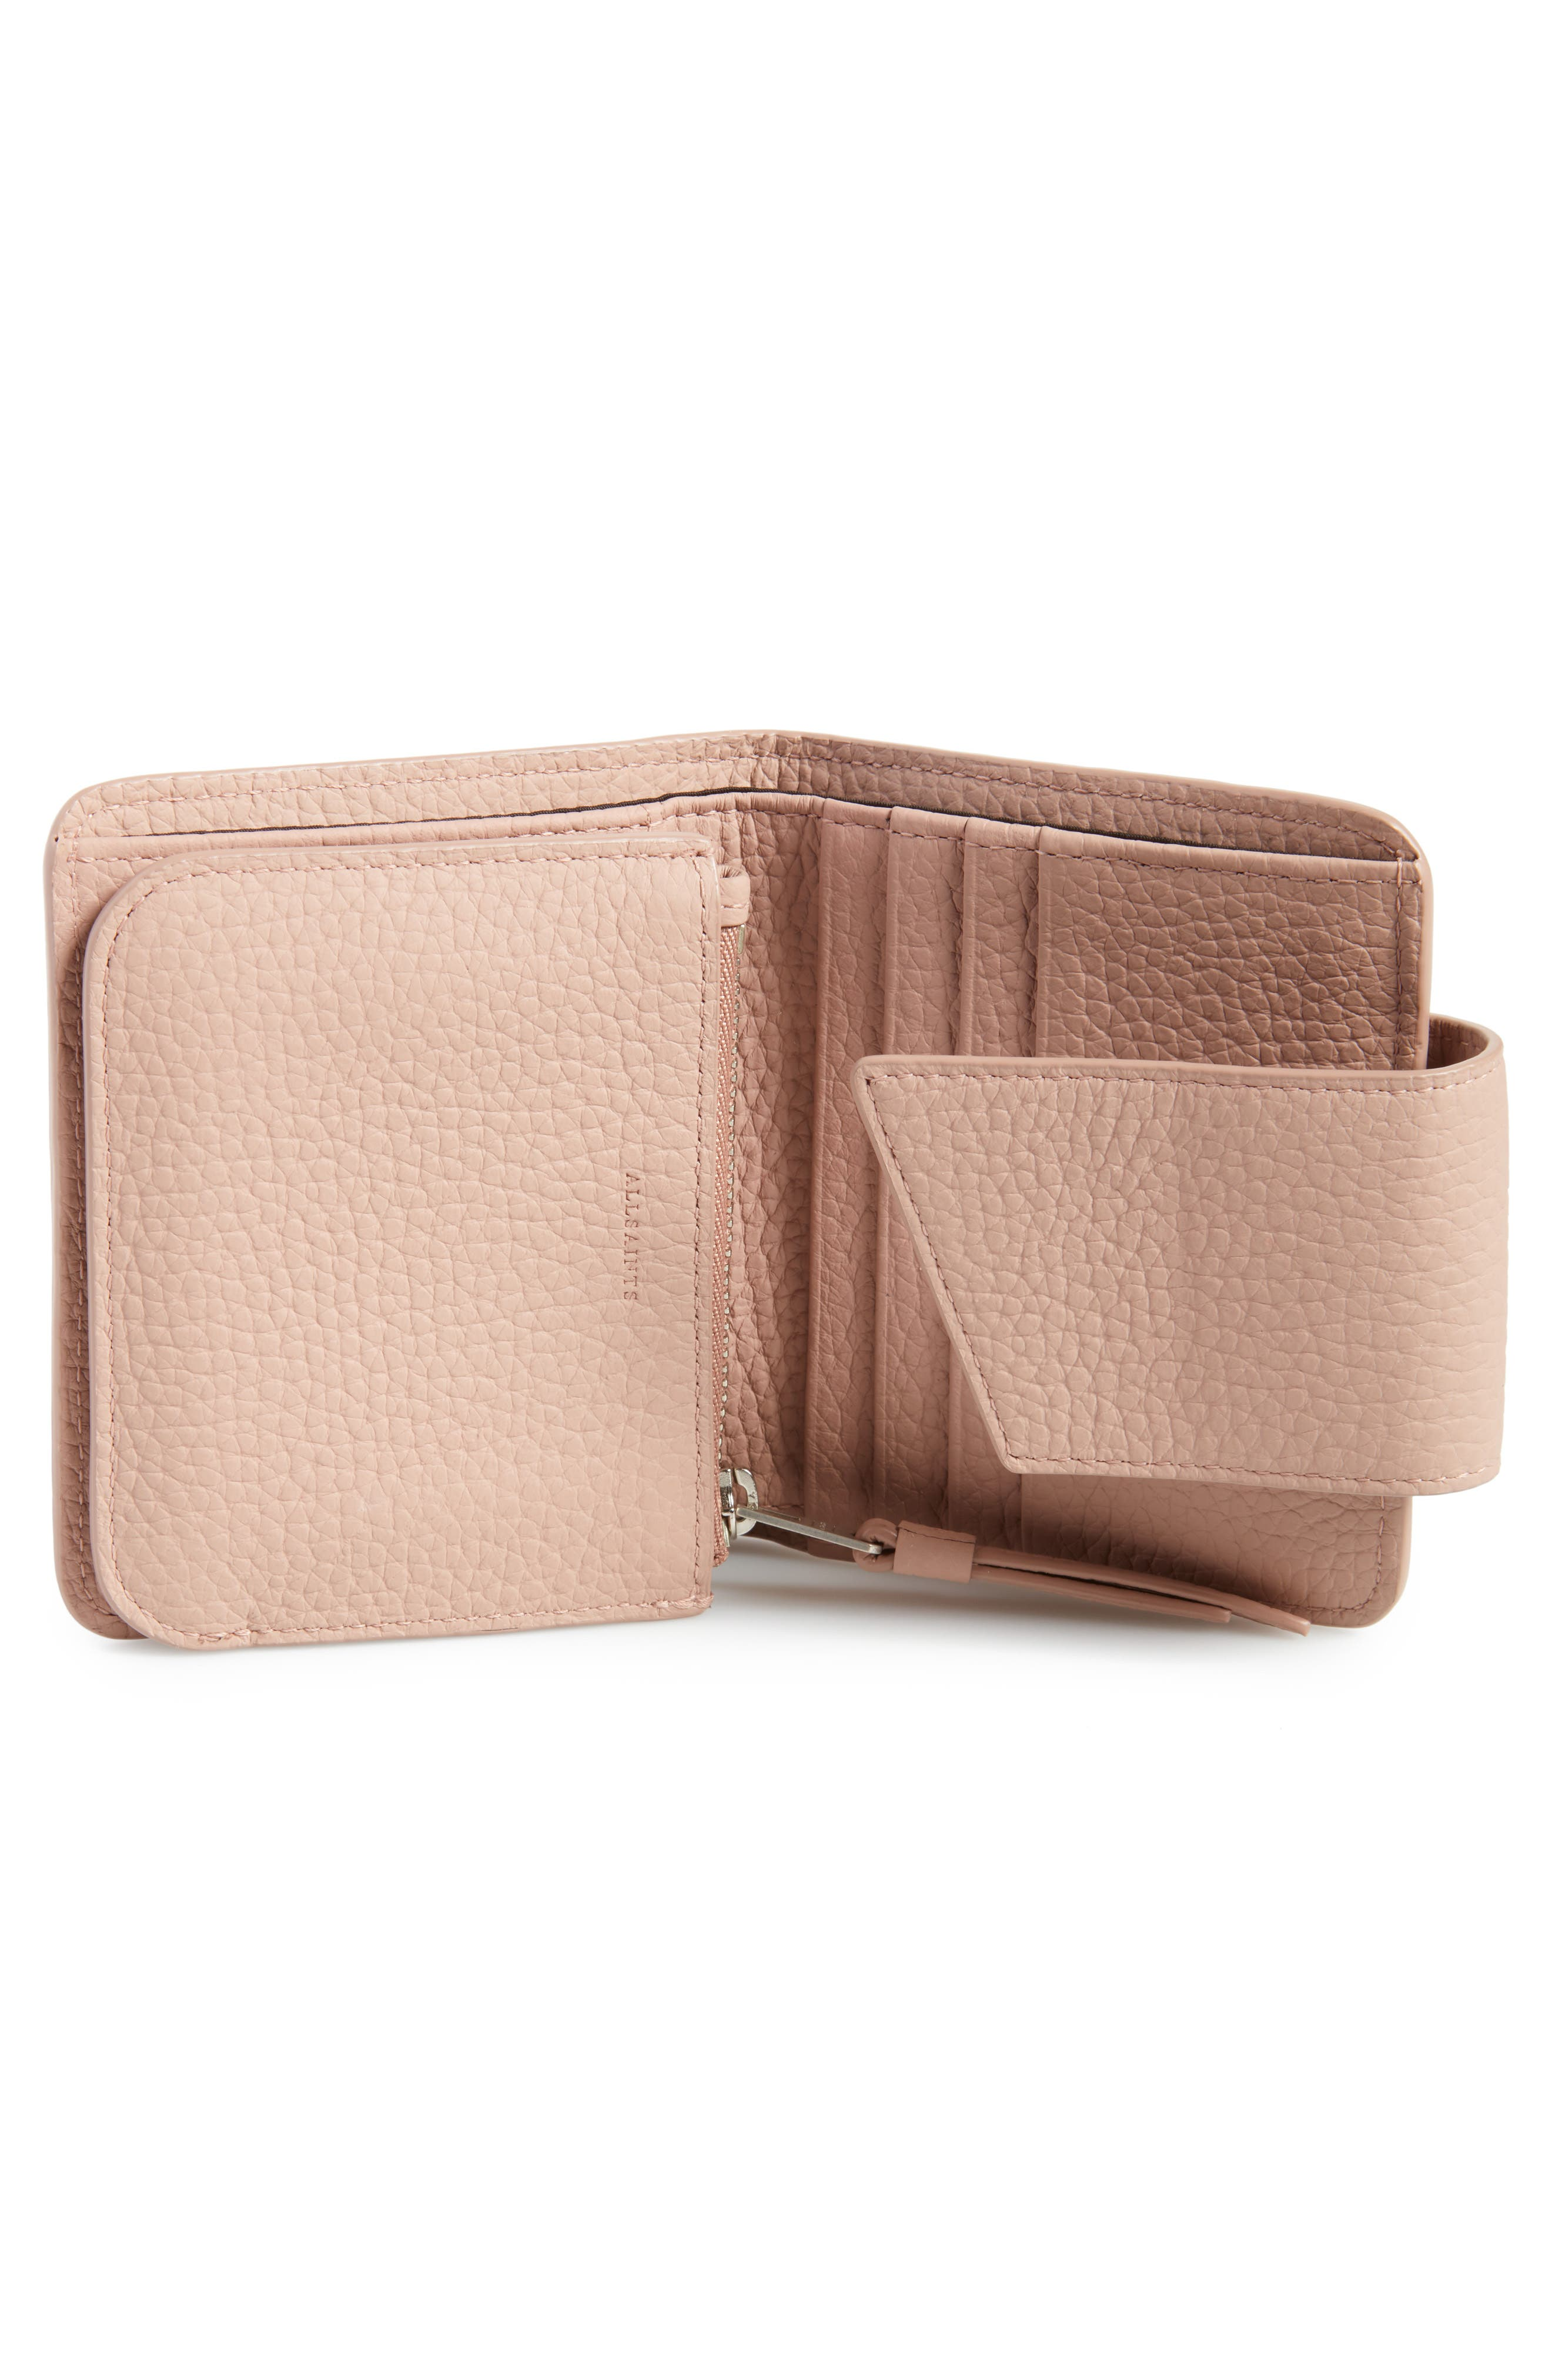 Small Ray Leather Wallet,                             Alternate thumbnail 8, color,